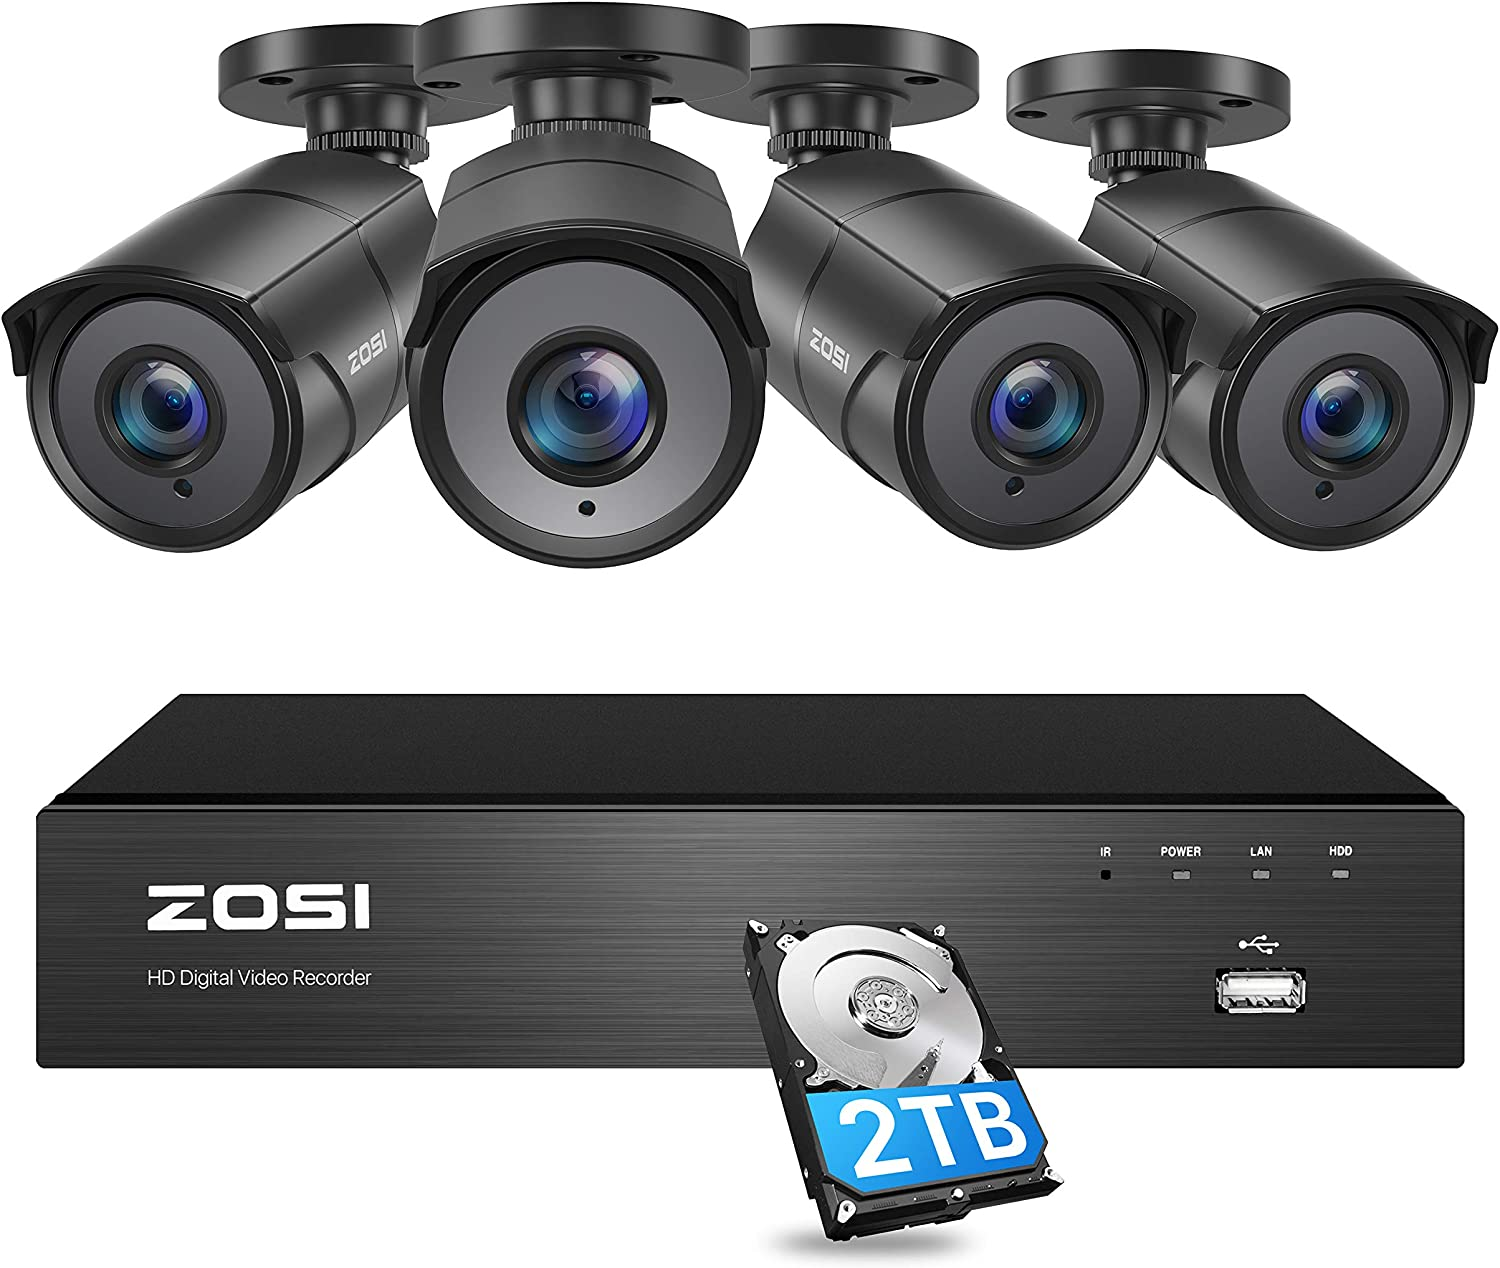 ZOSI 4K Ultra HD Home Security Camera System Outdoor Indoor, H.265+ 8 Channel CCTV DVR with 4 x 4K (8MP) Surveillance Bullet Camera Weatherproof, 150ft Night Vision, 2TB Hard Drive, Remote Access